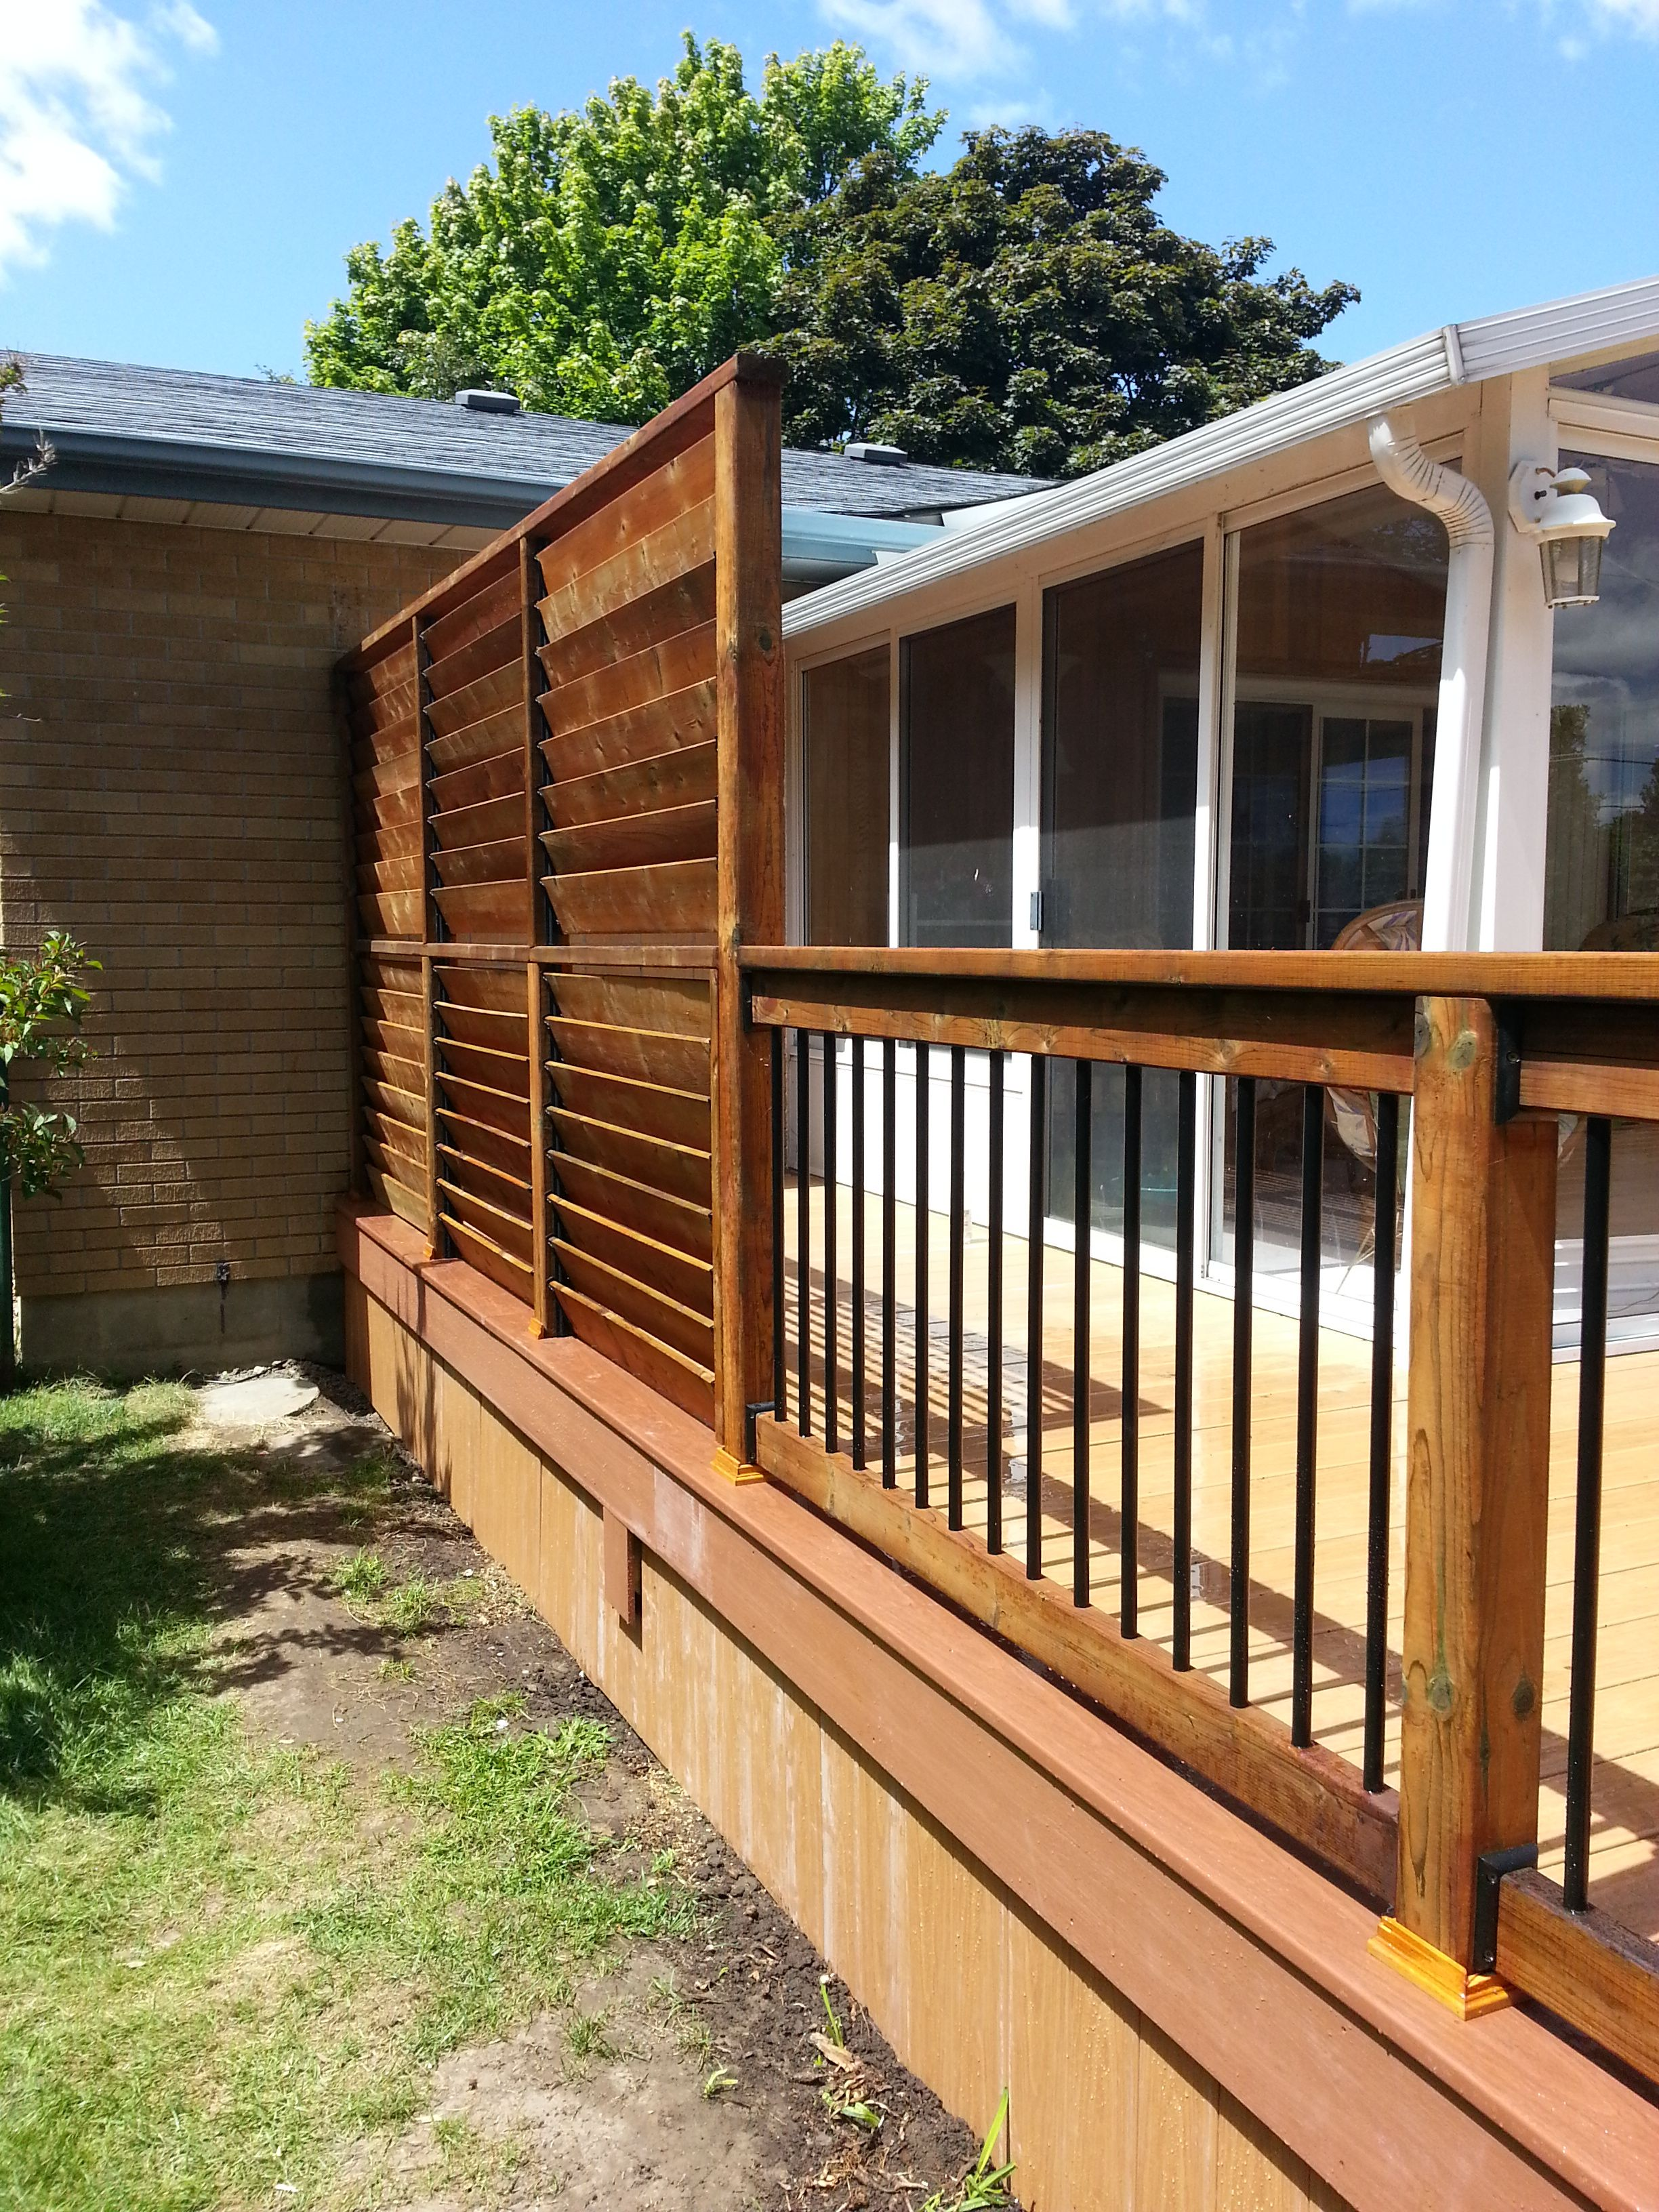 FLEXfence Creation By Thommoknockers Custom Decks. Louver Extra Privacy Deck .